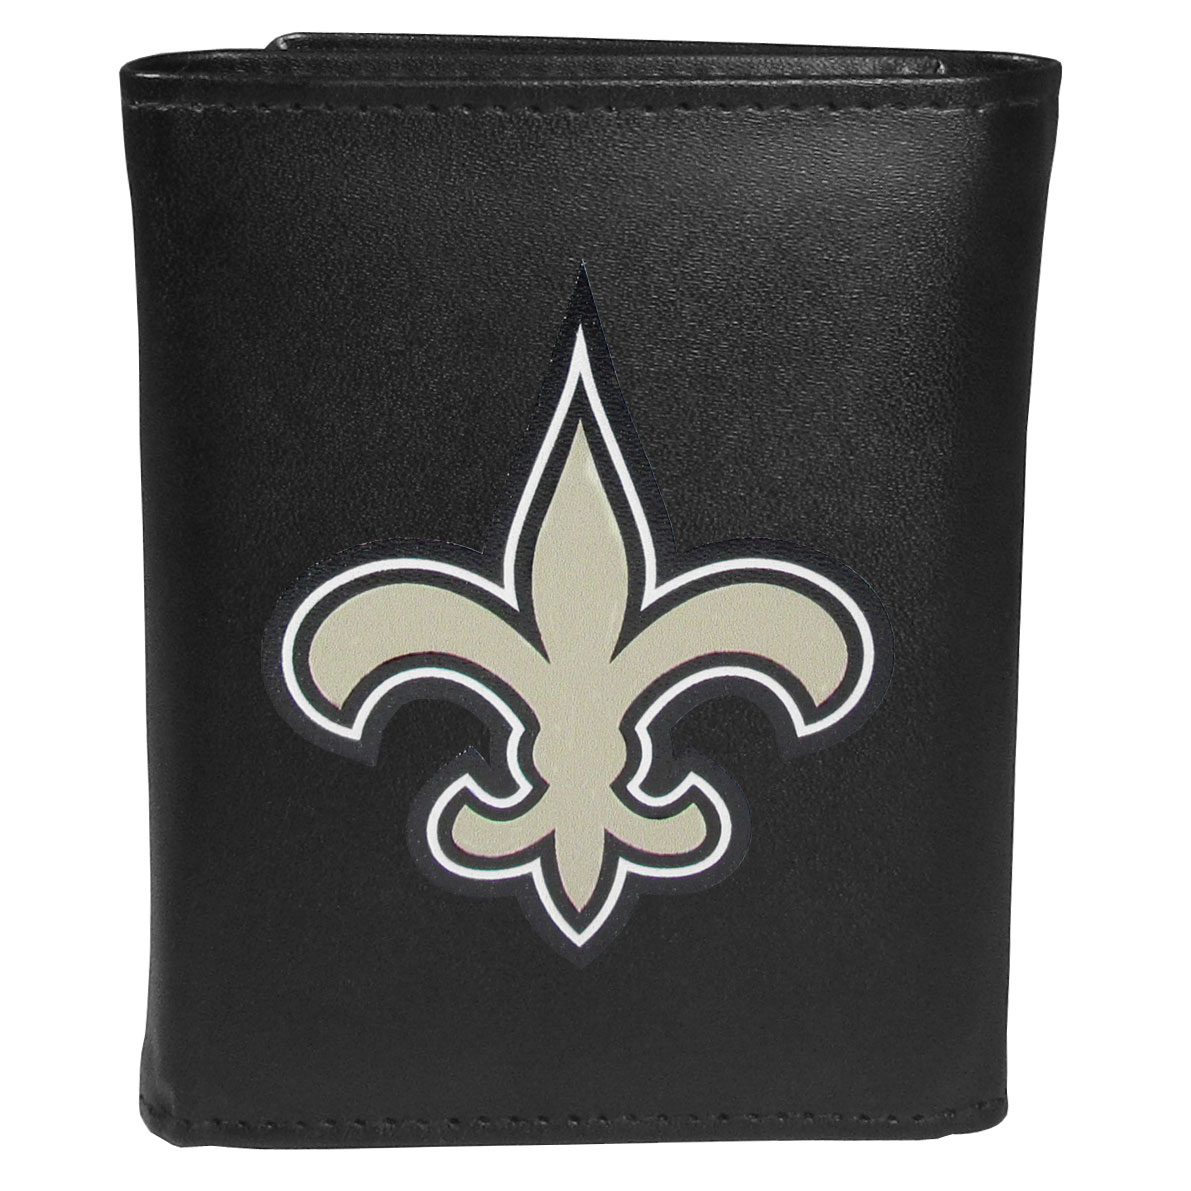 New Orleans Saints Tri-fold Wallet Large Logo - Sports fans do not have to sacrifice style with this classic tri-fold wallet that sports theNew Orleans Saints?extra large logo. This men's fashion accessory has a leather grain look and expert craftmanship for a quality wallet at a great price. The wallet features inner credit card slots, windowed ID slot and a large billfold pocket. The front of the wallet features an extra large printed team logo.